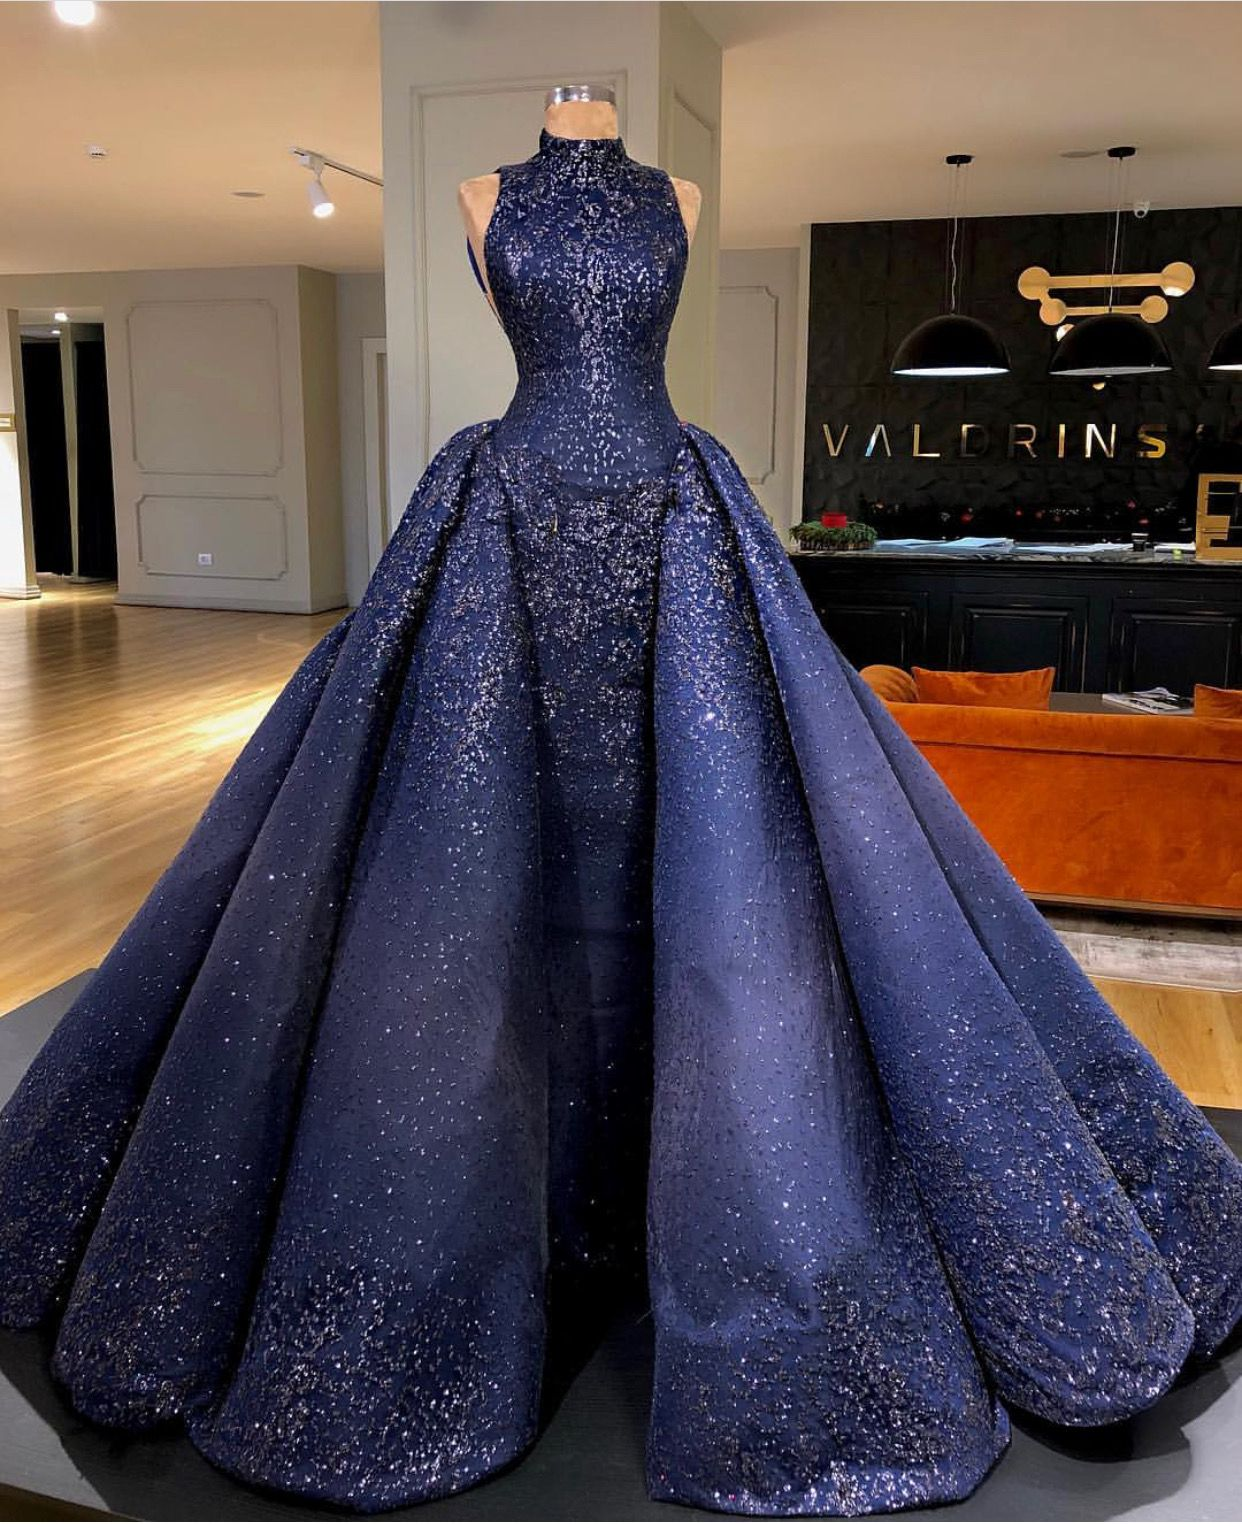 Pin by susi on ballgowns in pinterest dresses gowns and